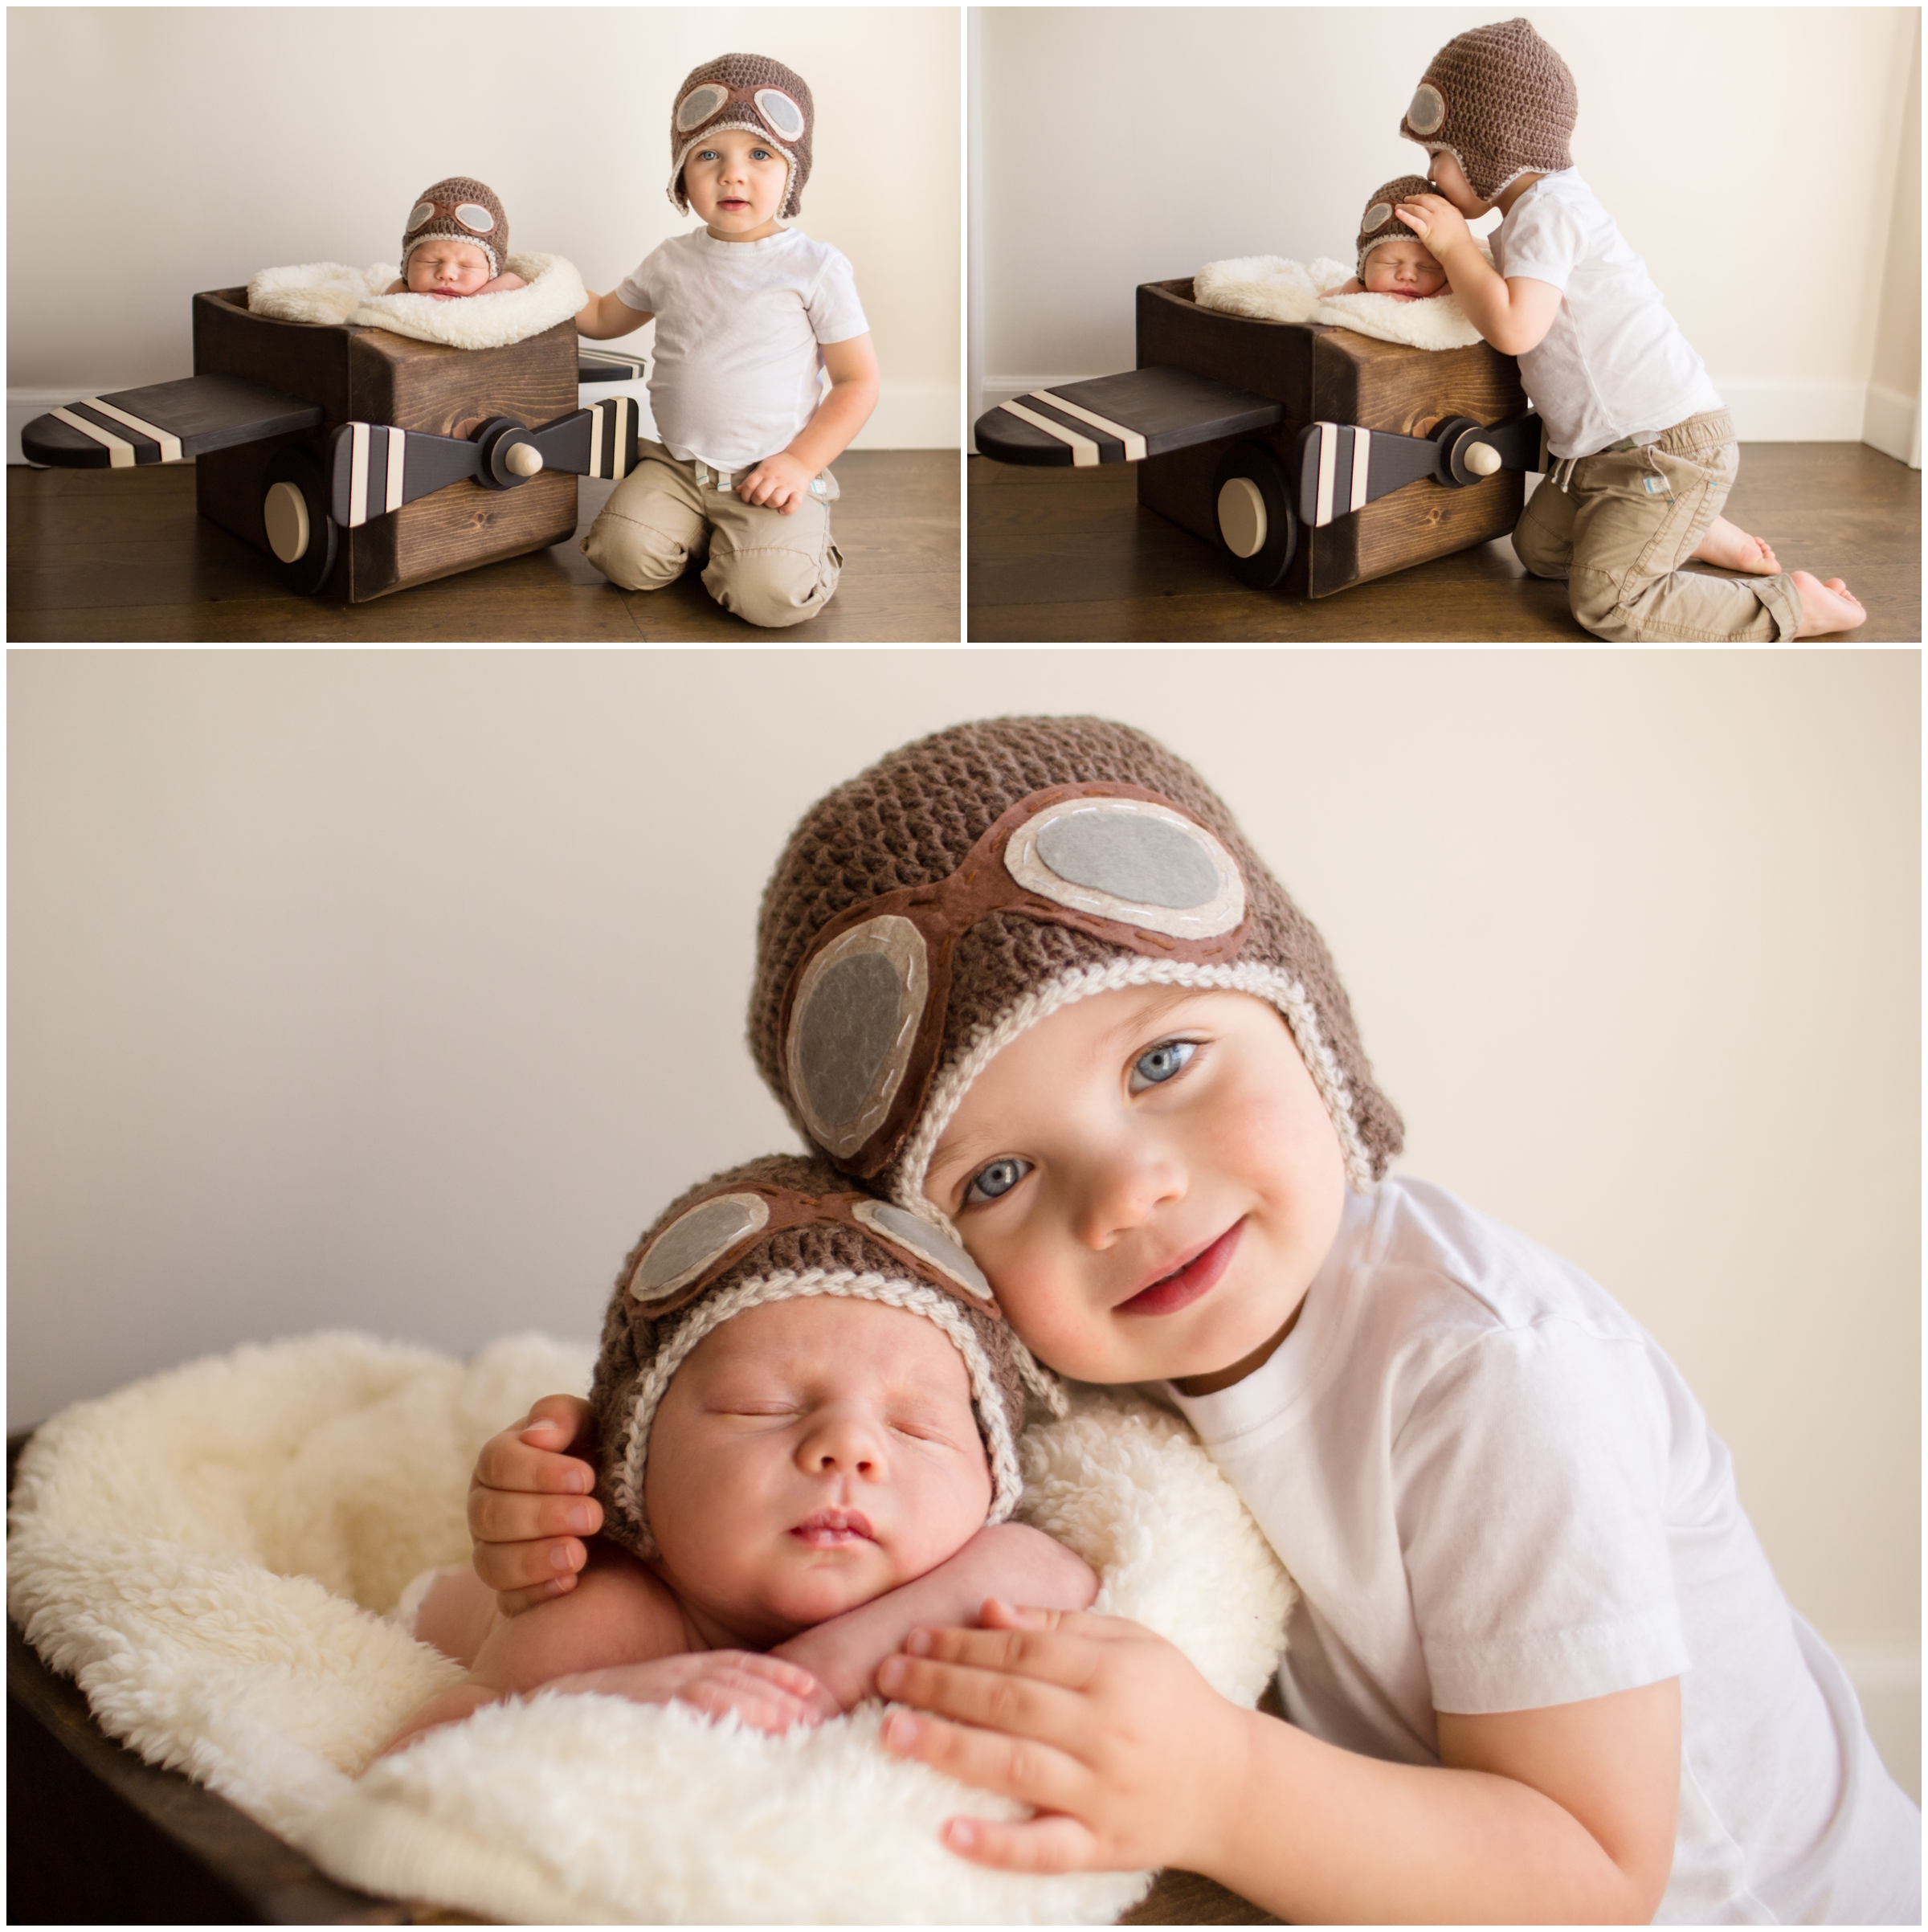 Newborn in Plane Prop with Sibling by Just Maggie Photography - Los Angeles Newborn Photographer